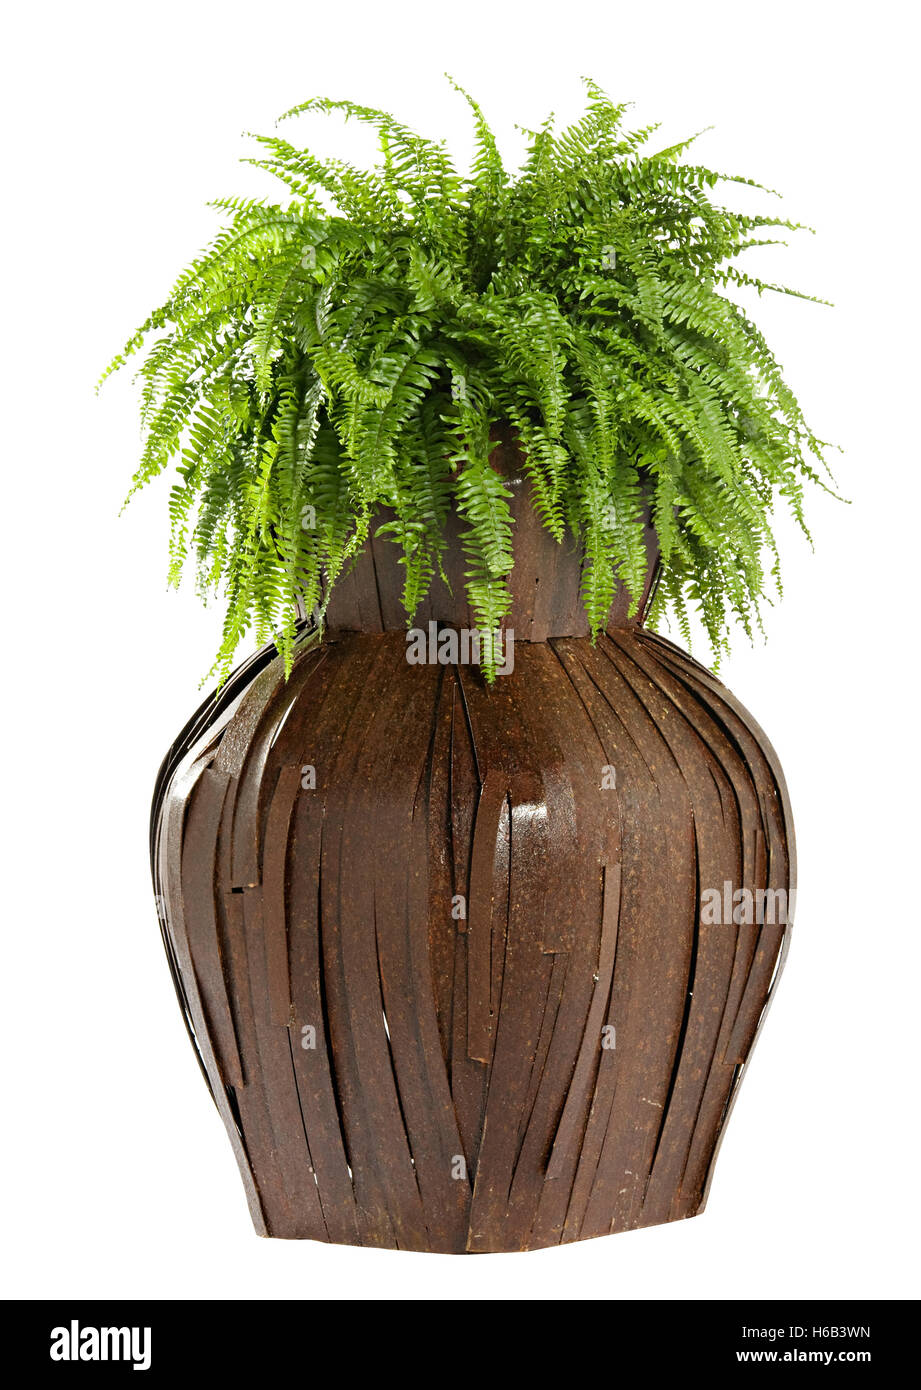 Interesting bulbous wooden flower box with a lush green fern growing in it isolated on white - Stock Image